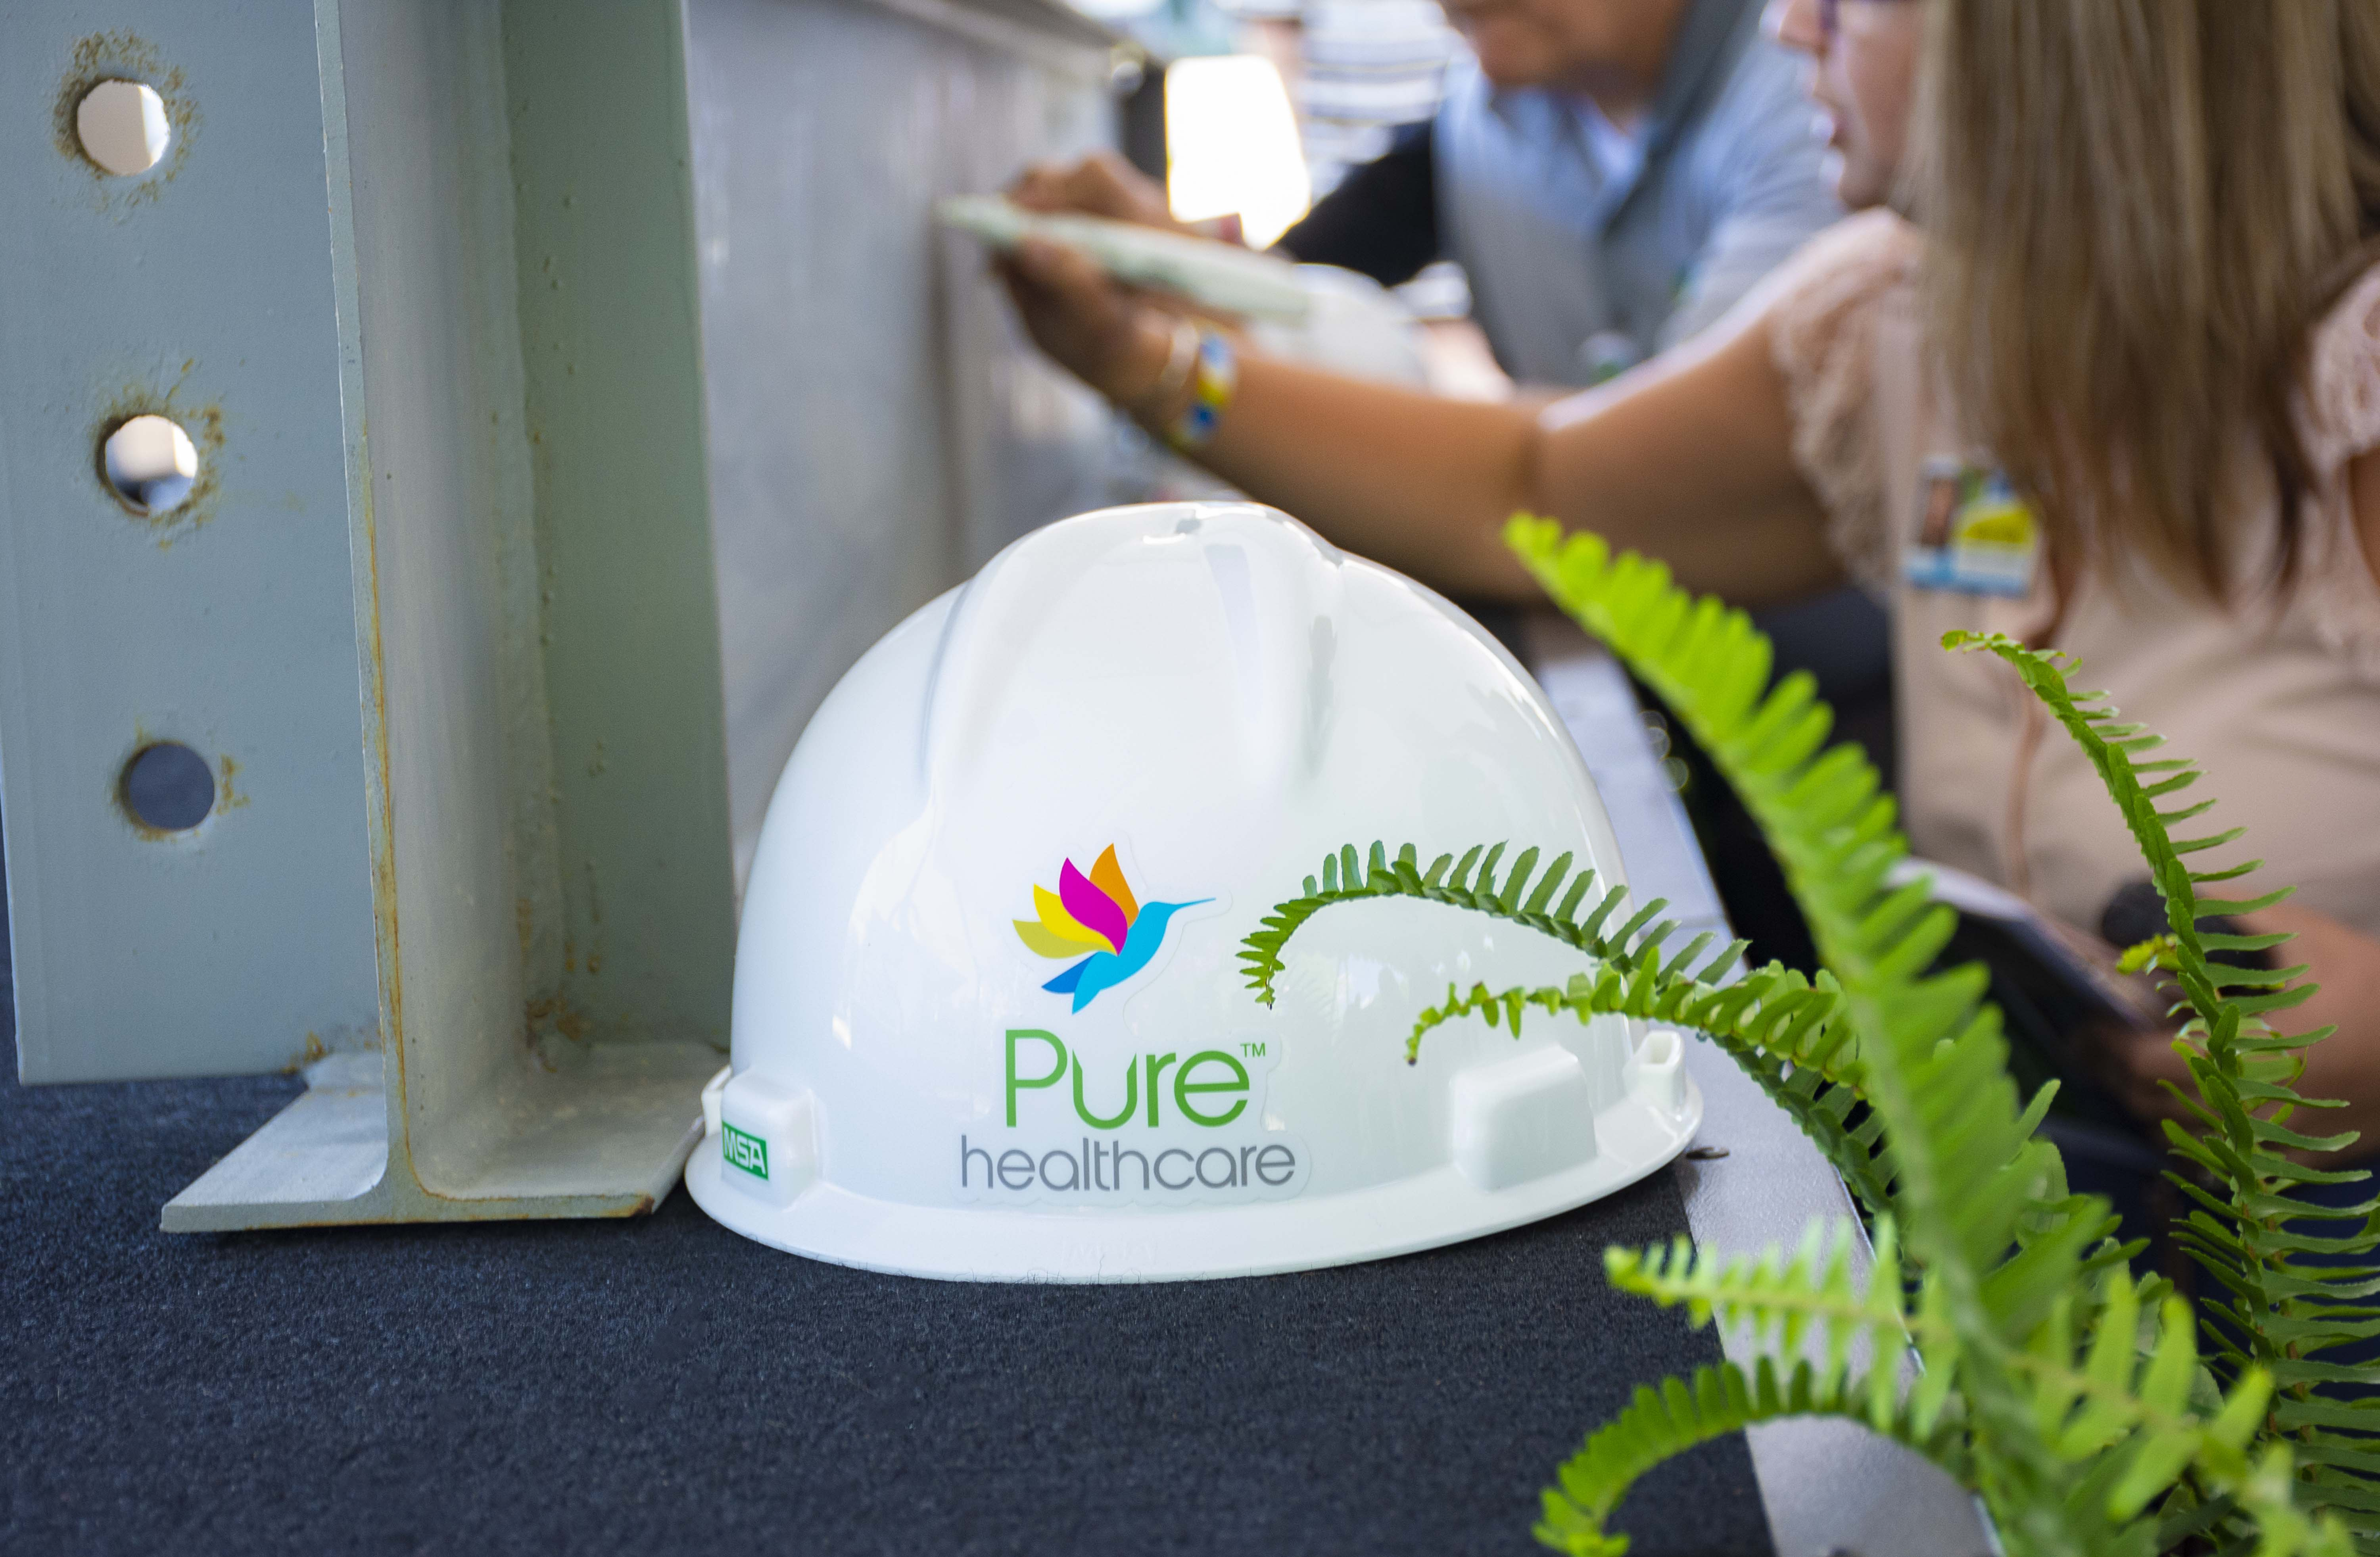 Pure Healthcare Facility Will Offer Services And Support For Those With Complex Illnesses